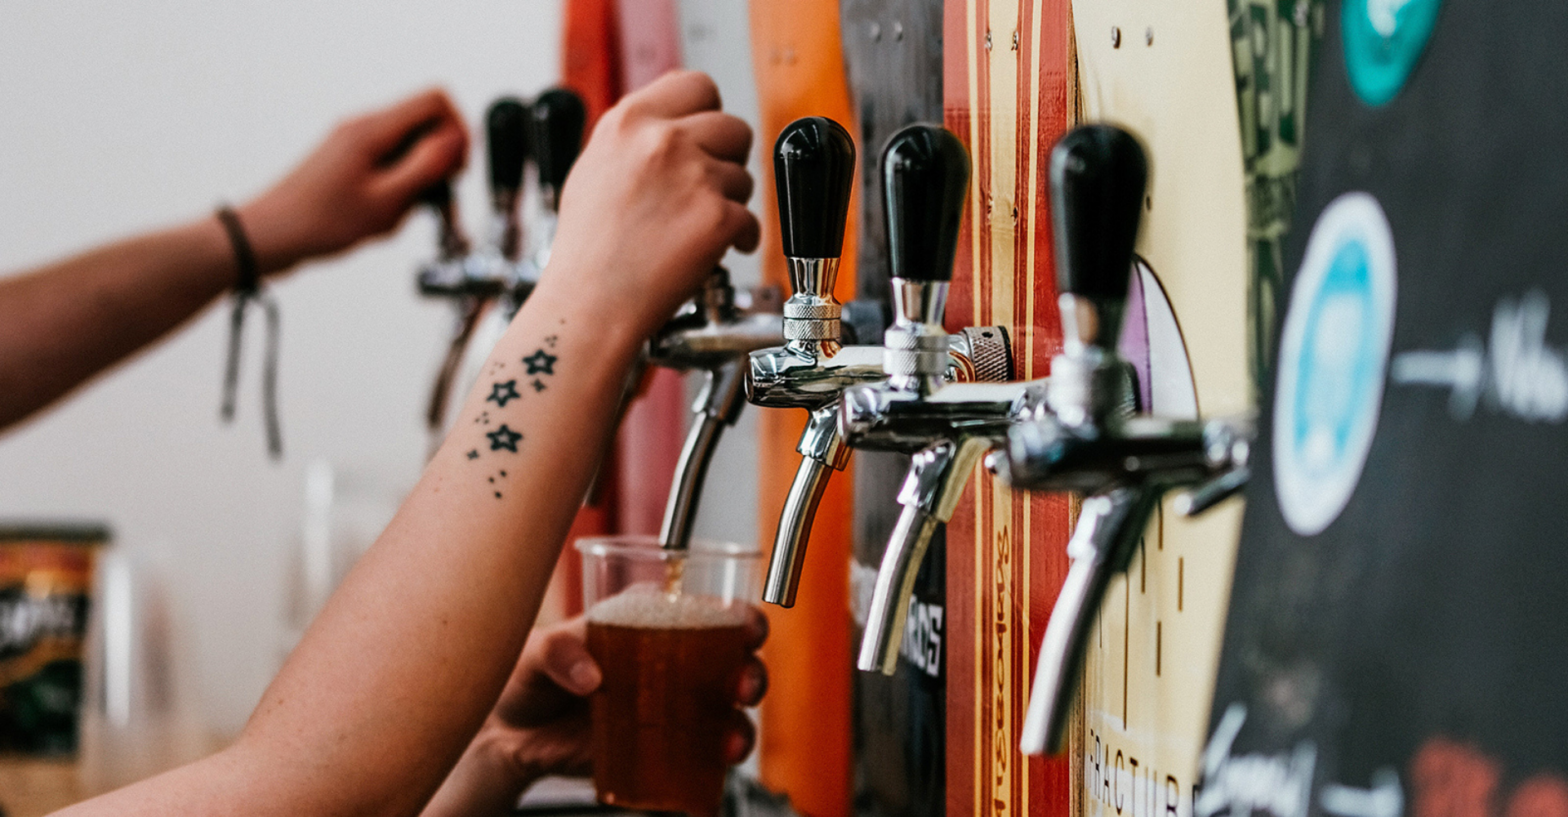 A hand pouring a pint in a brewery